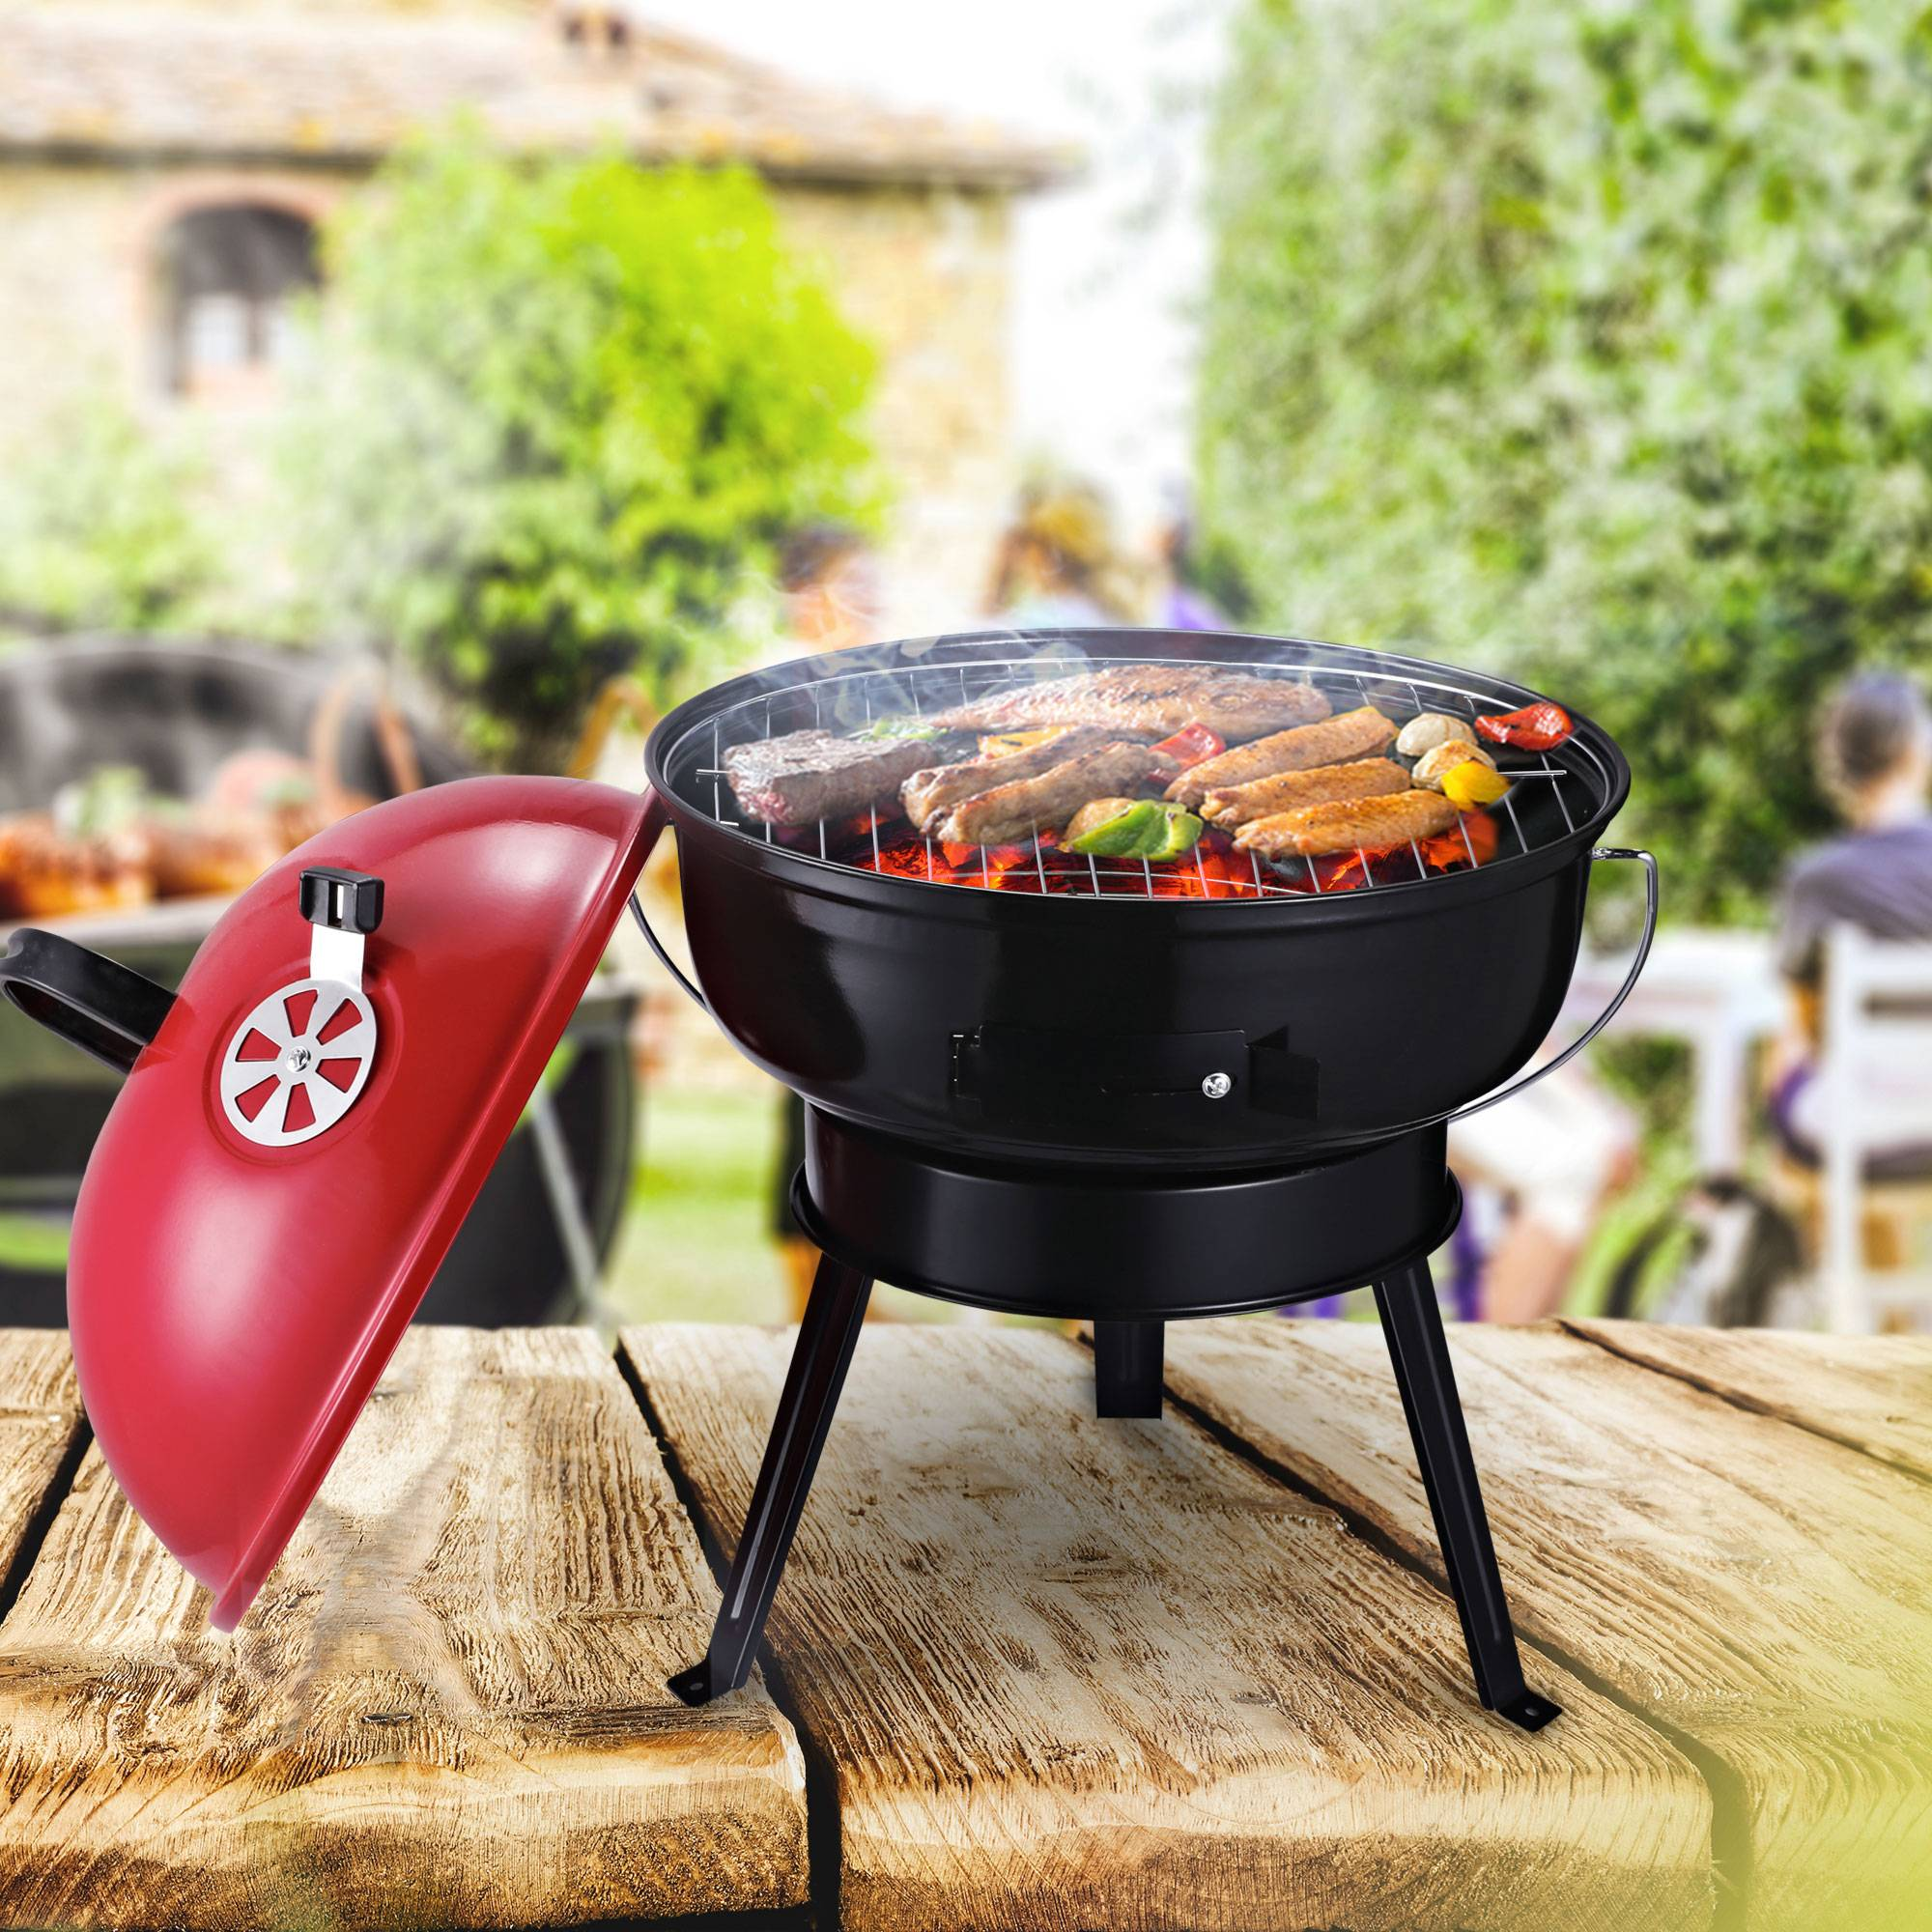 Outsunny Metal Portable Tripod Charcoal BBQ Grill Black Red